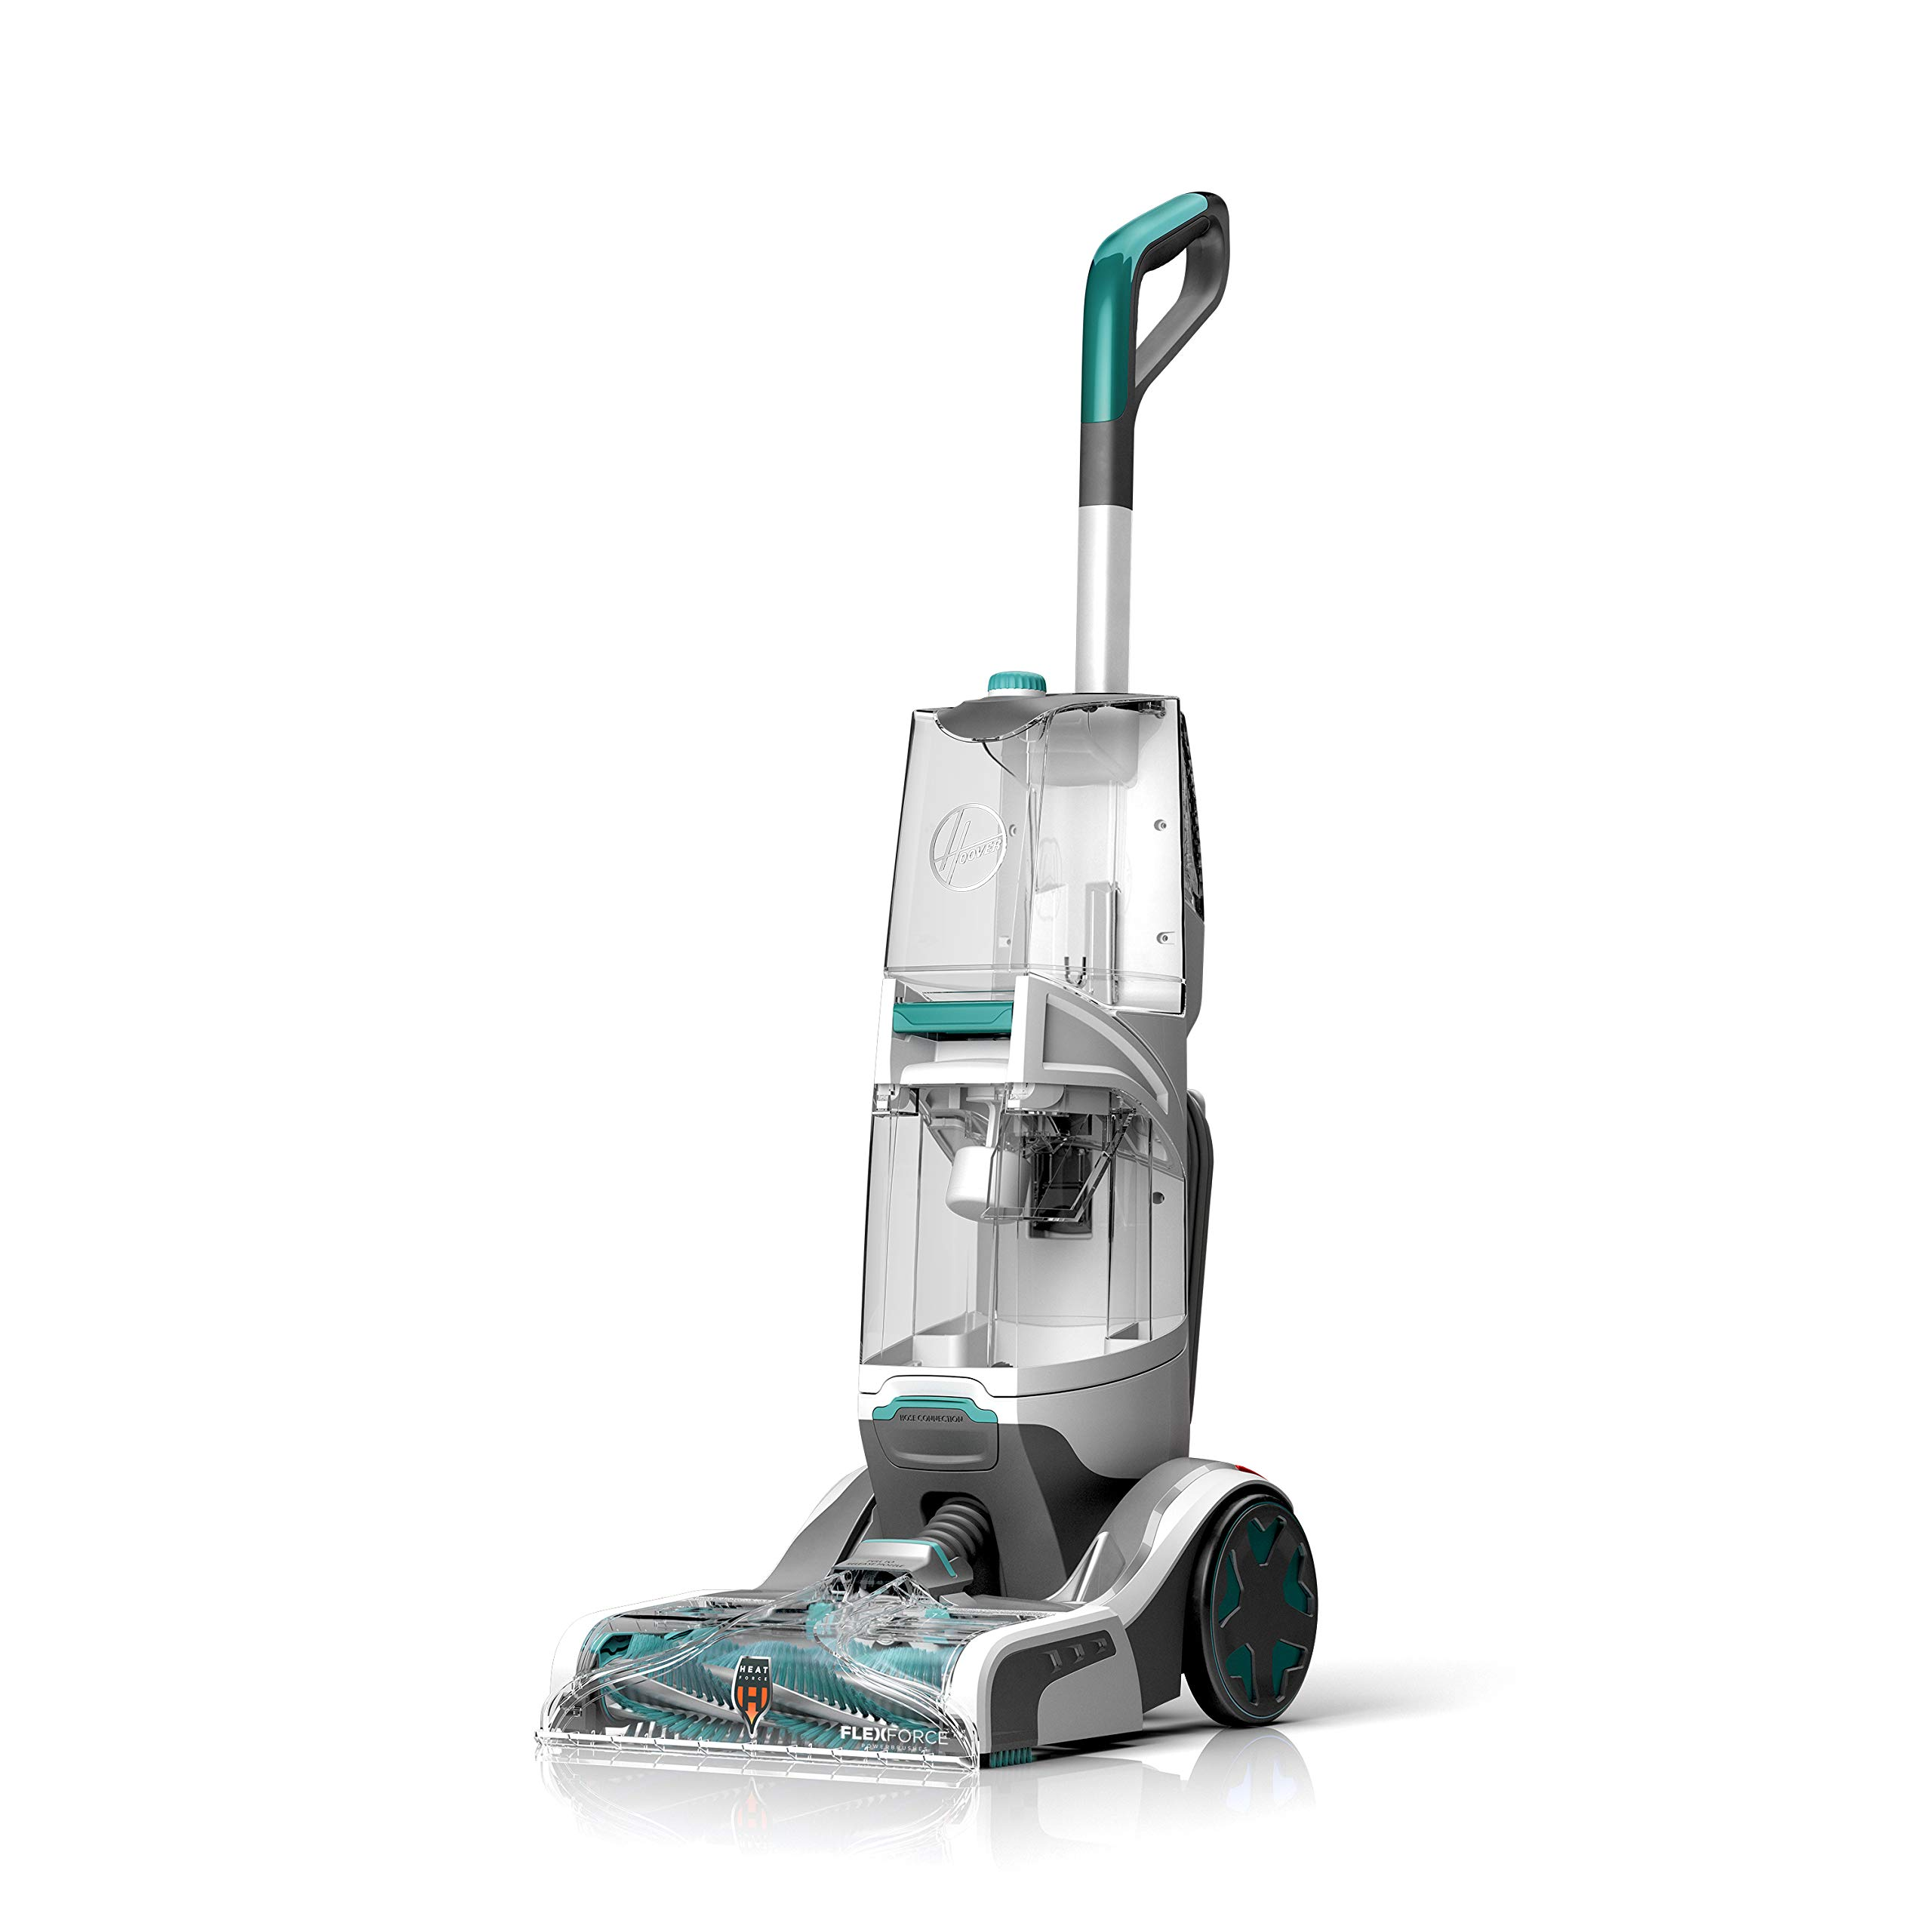 Hoover Smartwash Carpet Cleaner Turquoise